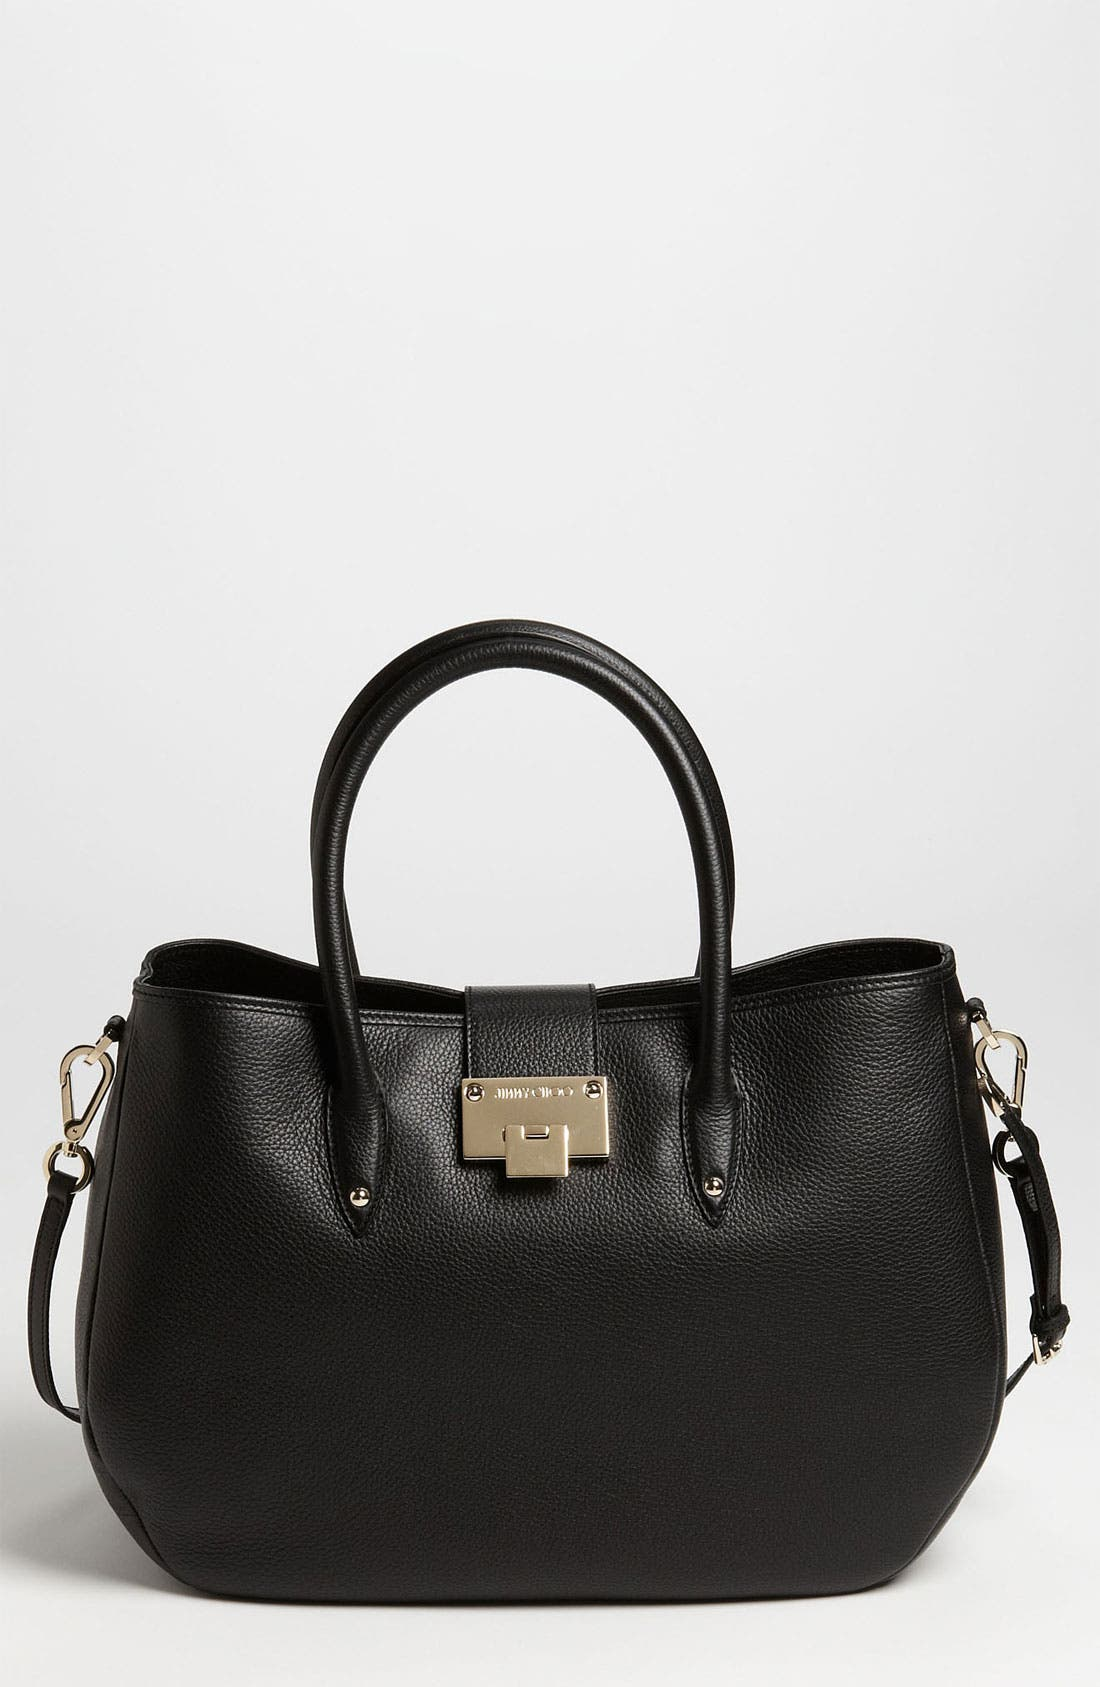 Main Image - Jimmy Choo 'Rania' Leather Satchel